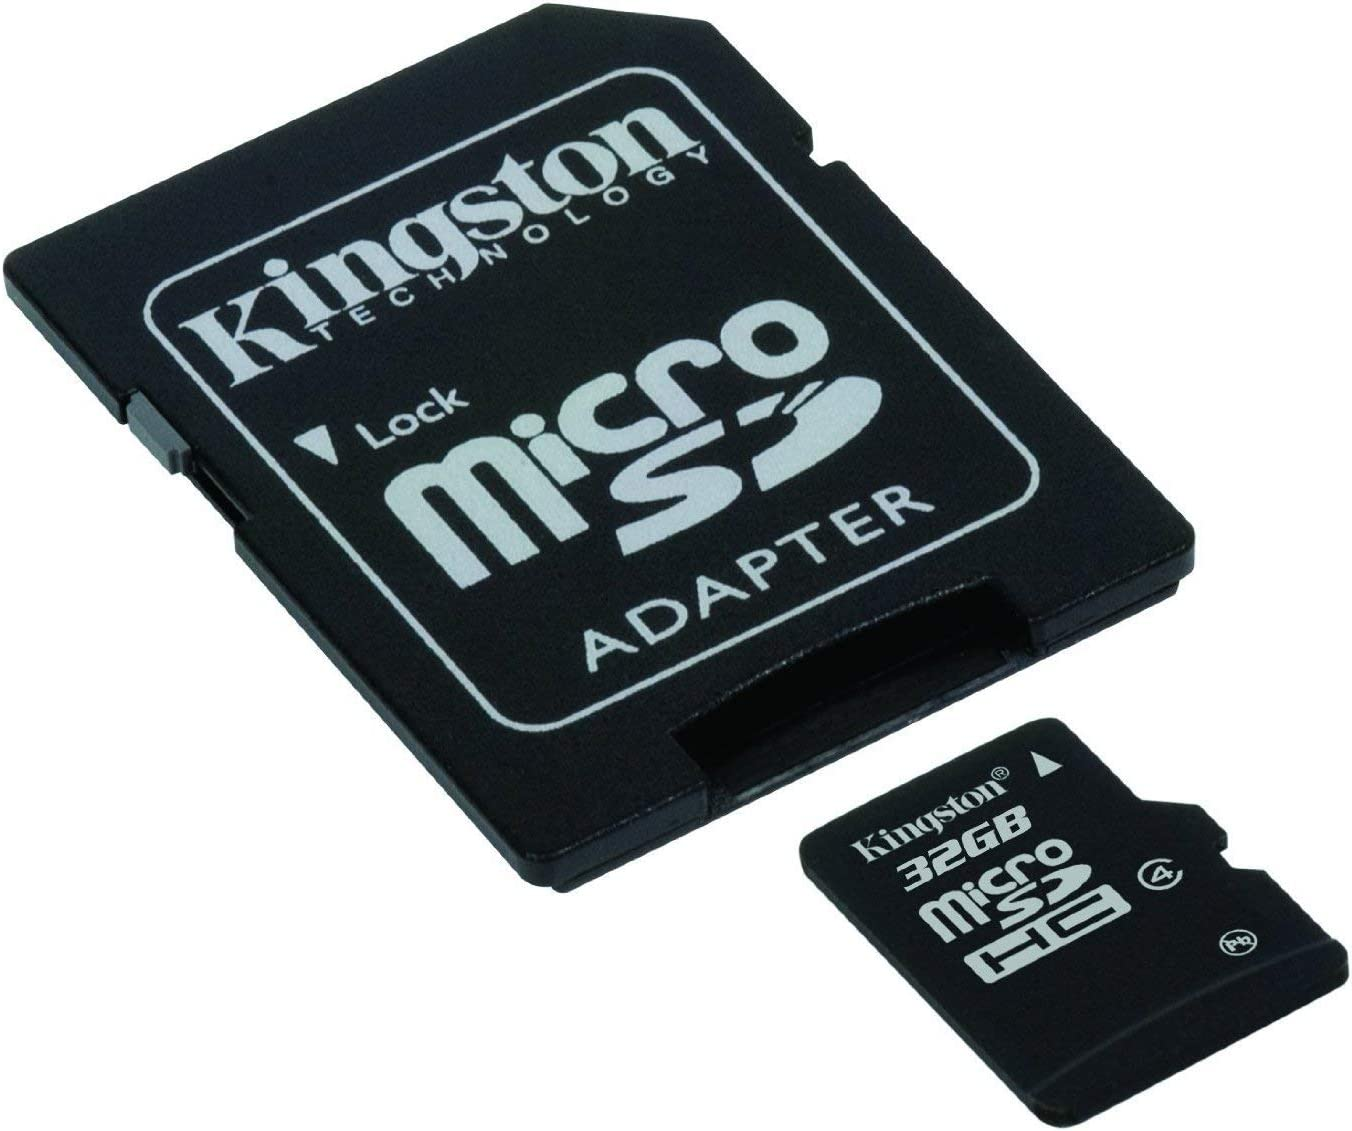 Kingston Industrial Grade 32GB ZTE Star II MicroSDHC Card Verified by SanFlash. 90MBs Works for Kingston